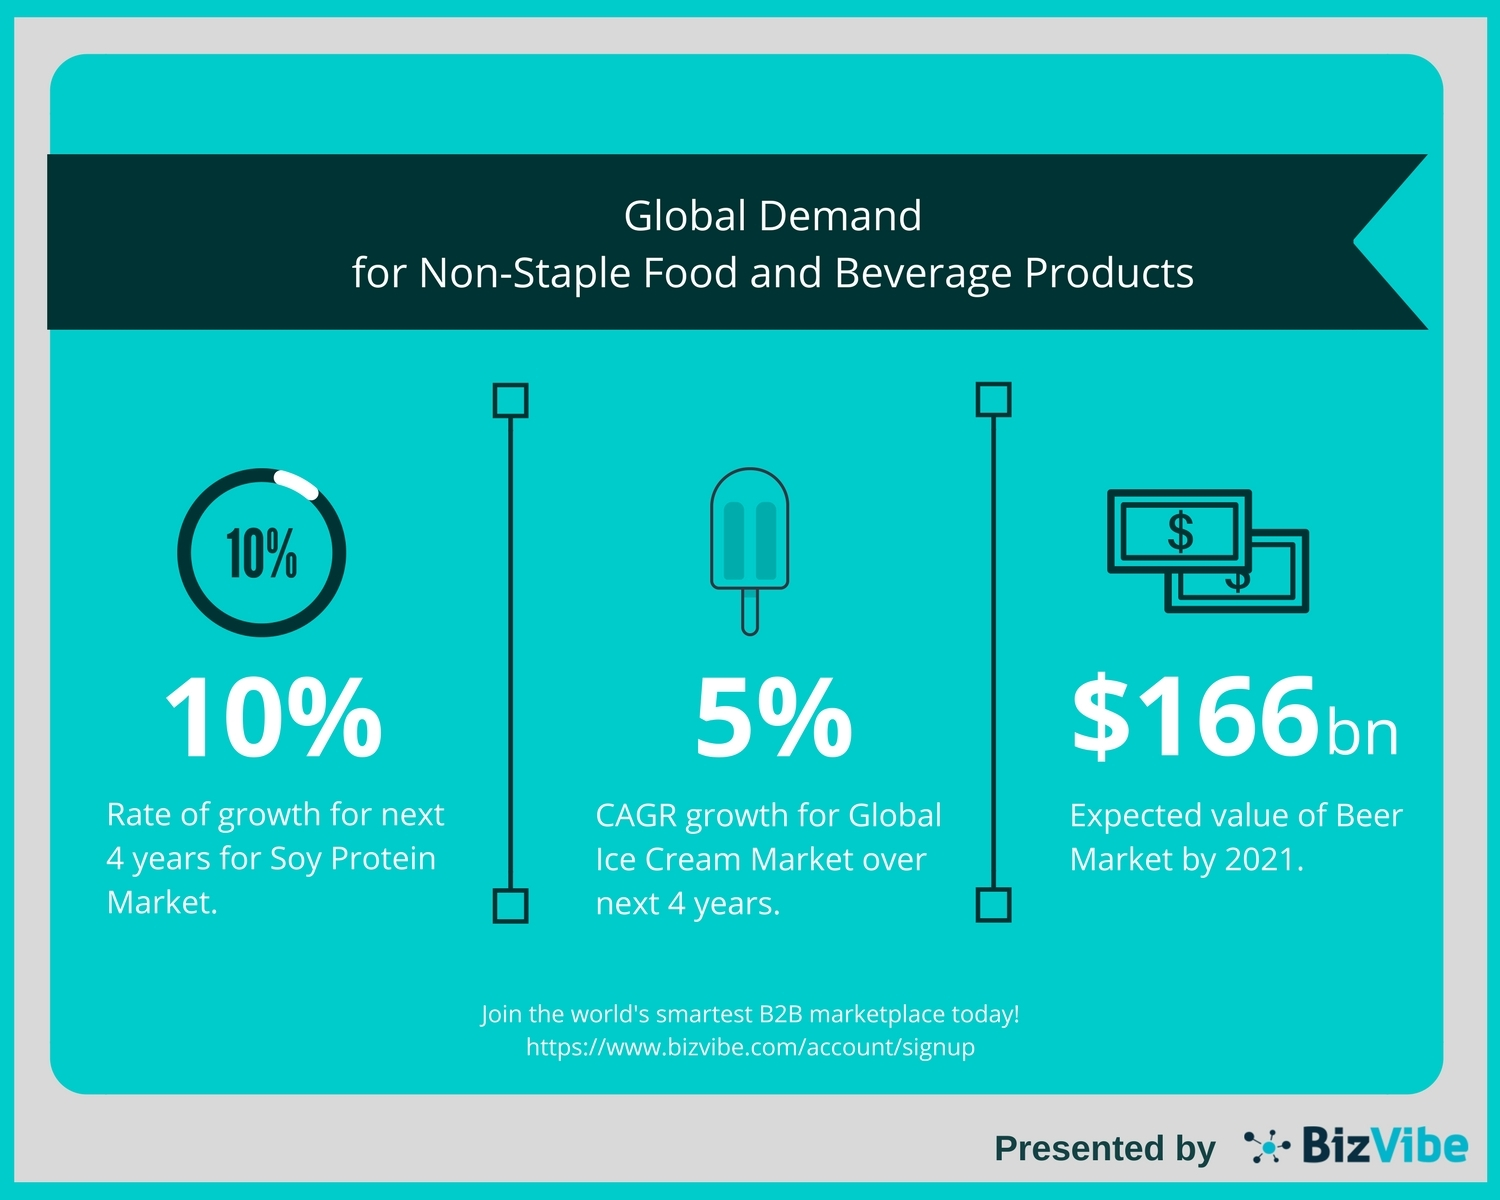 BizVibe Highlights the Global Demand for Non-Staple Food and Beverage Products (Graphic: Business Wire)